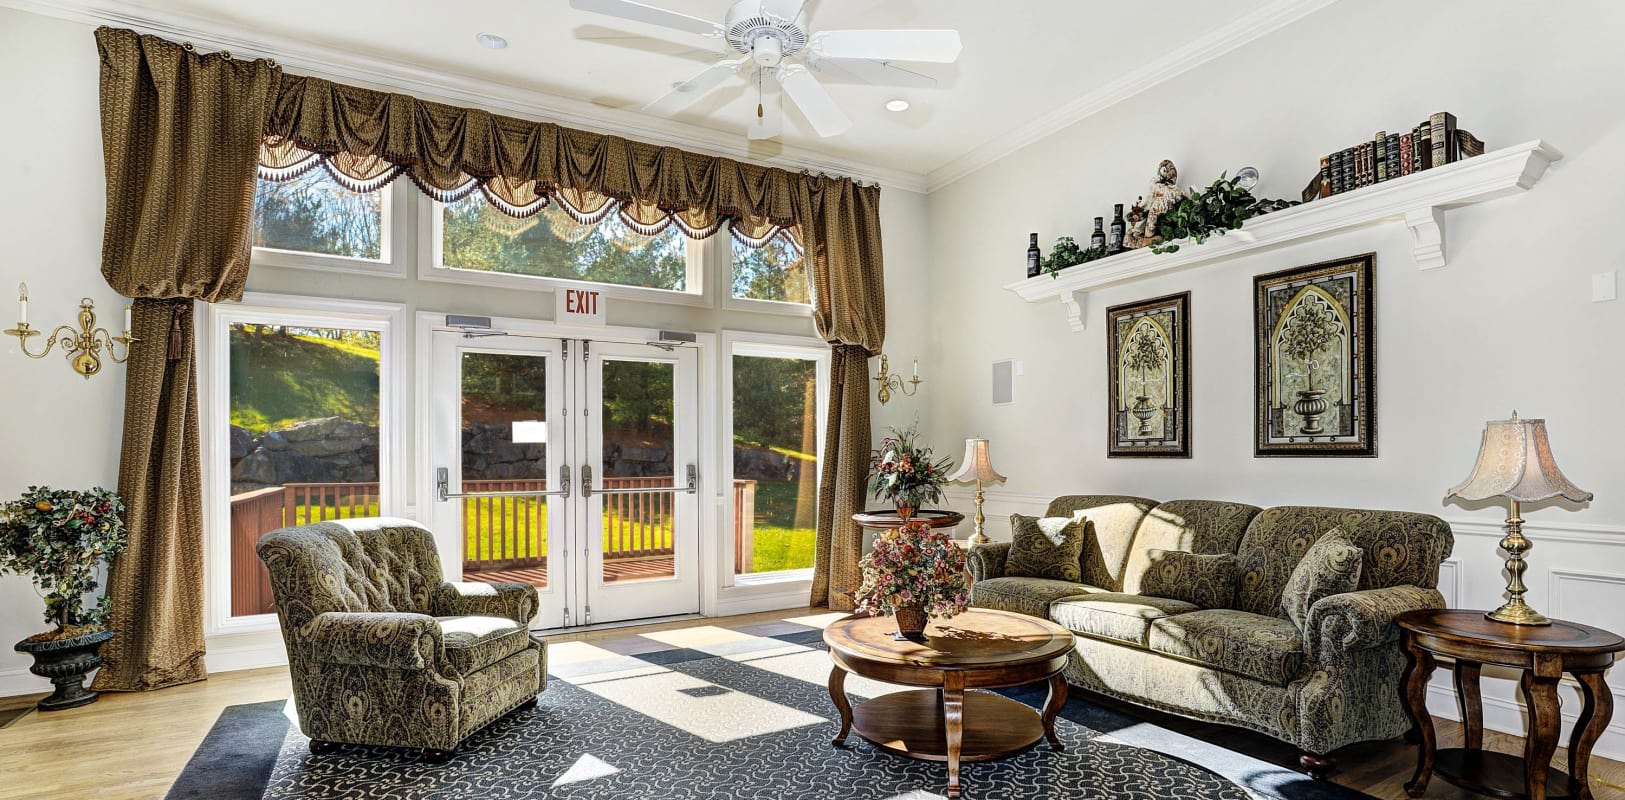 Spacious clubhouse lounge area with comfortable furnishings at Hanover Glen in Bethlehem, Pennsylvania